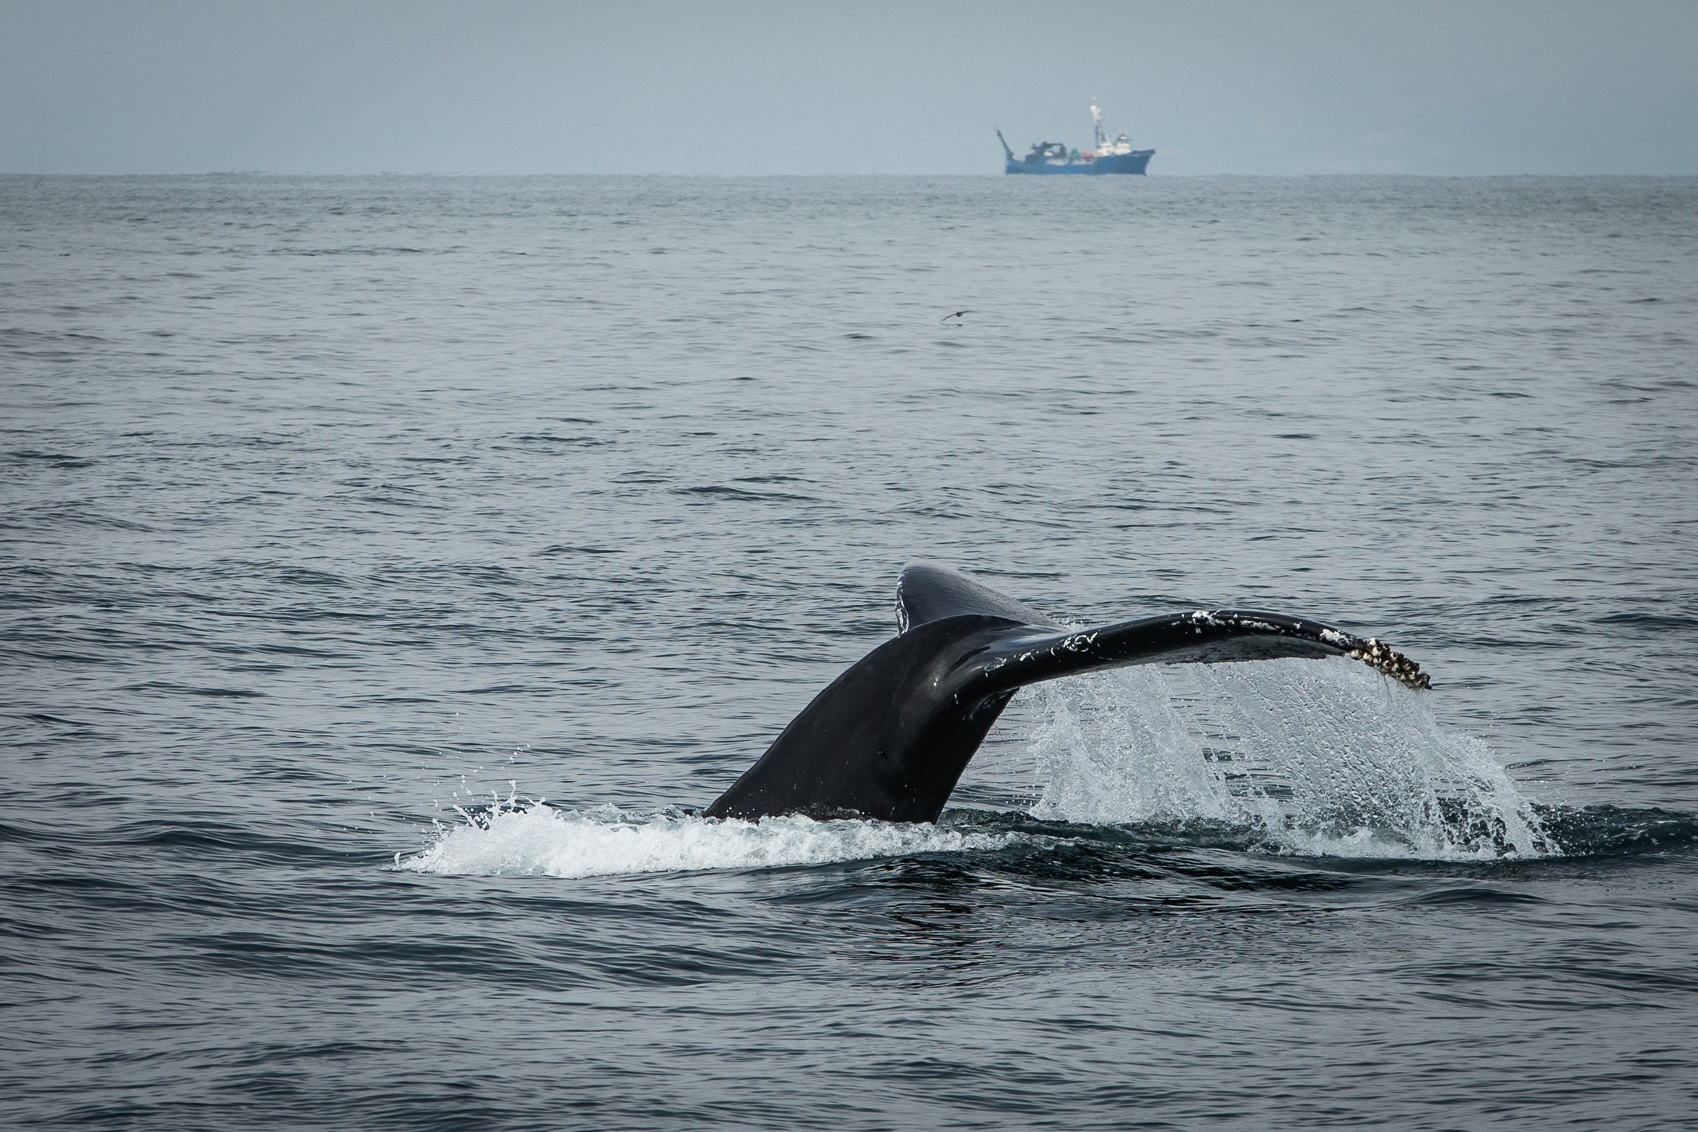 A whale's tail shows out of the water in the ocean and a large boat sits in the distance